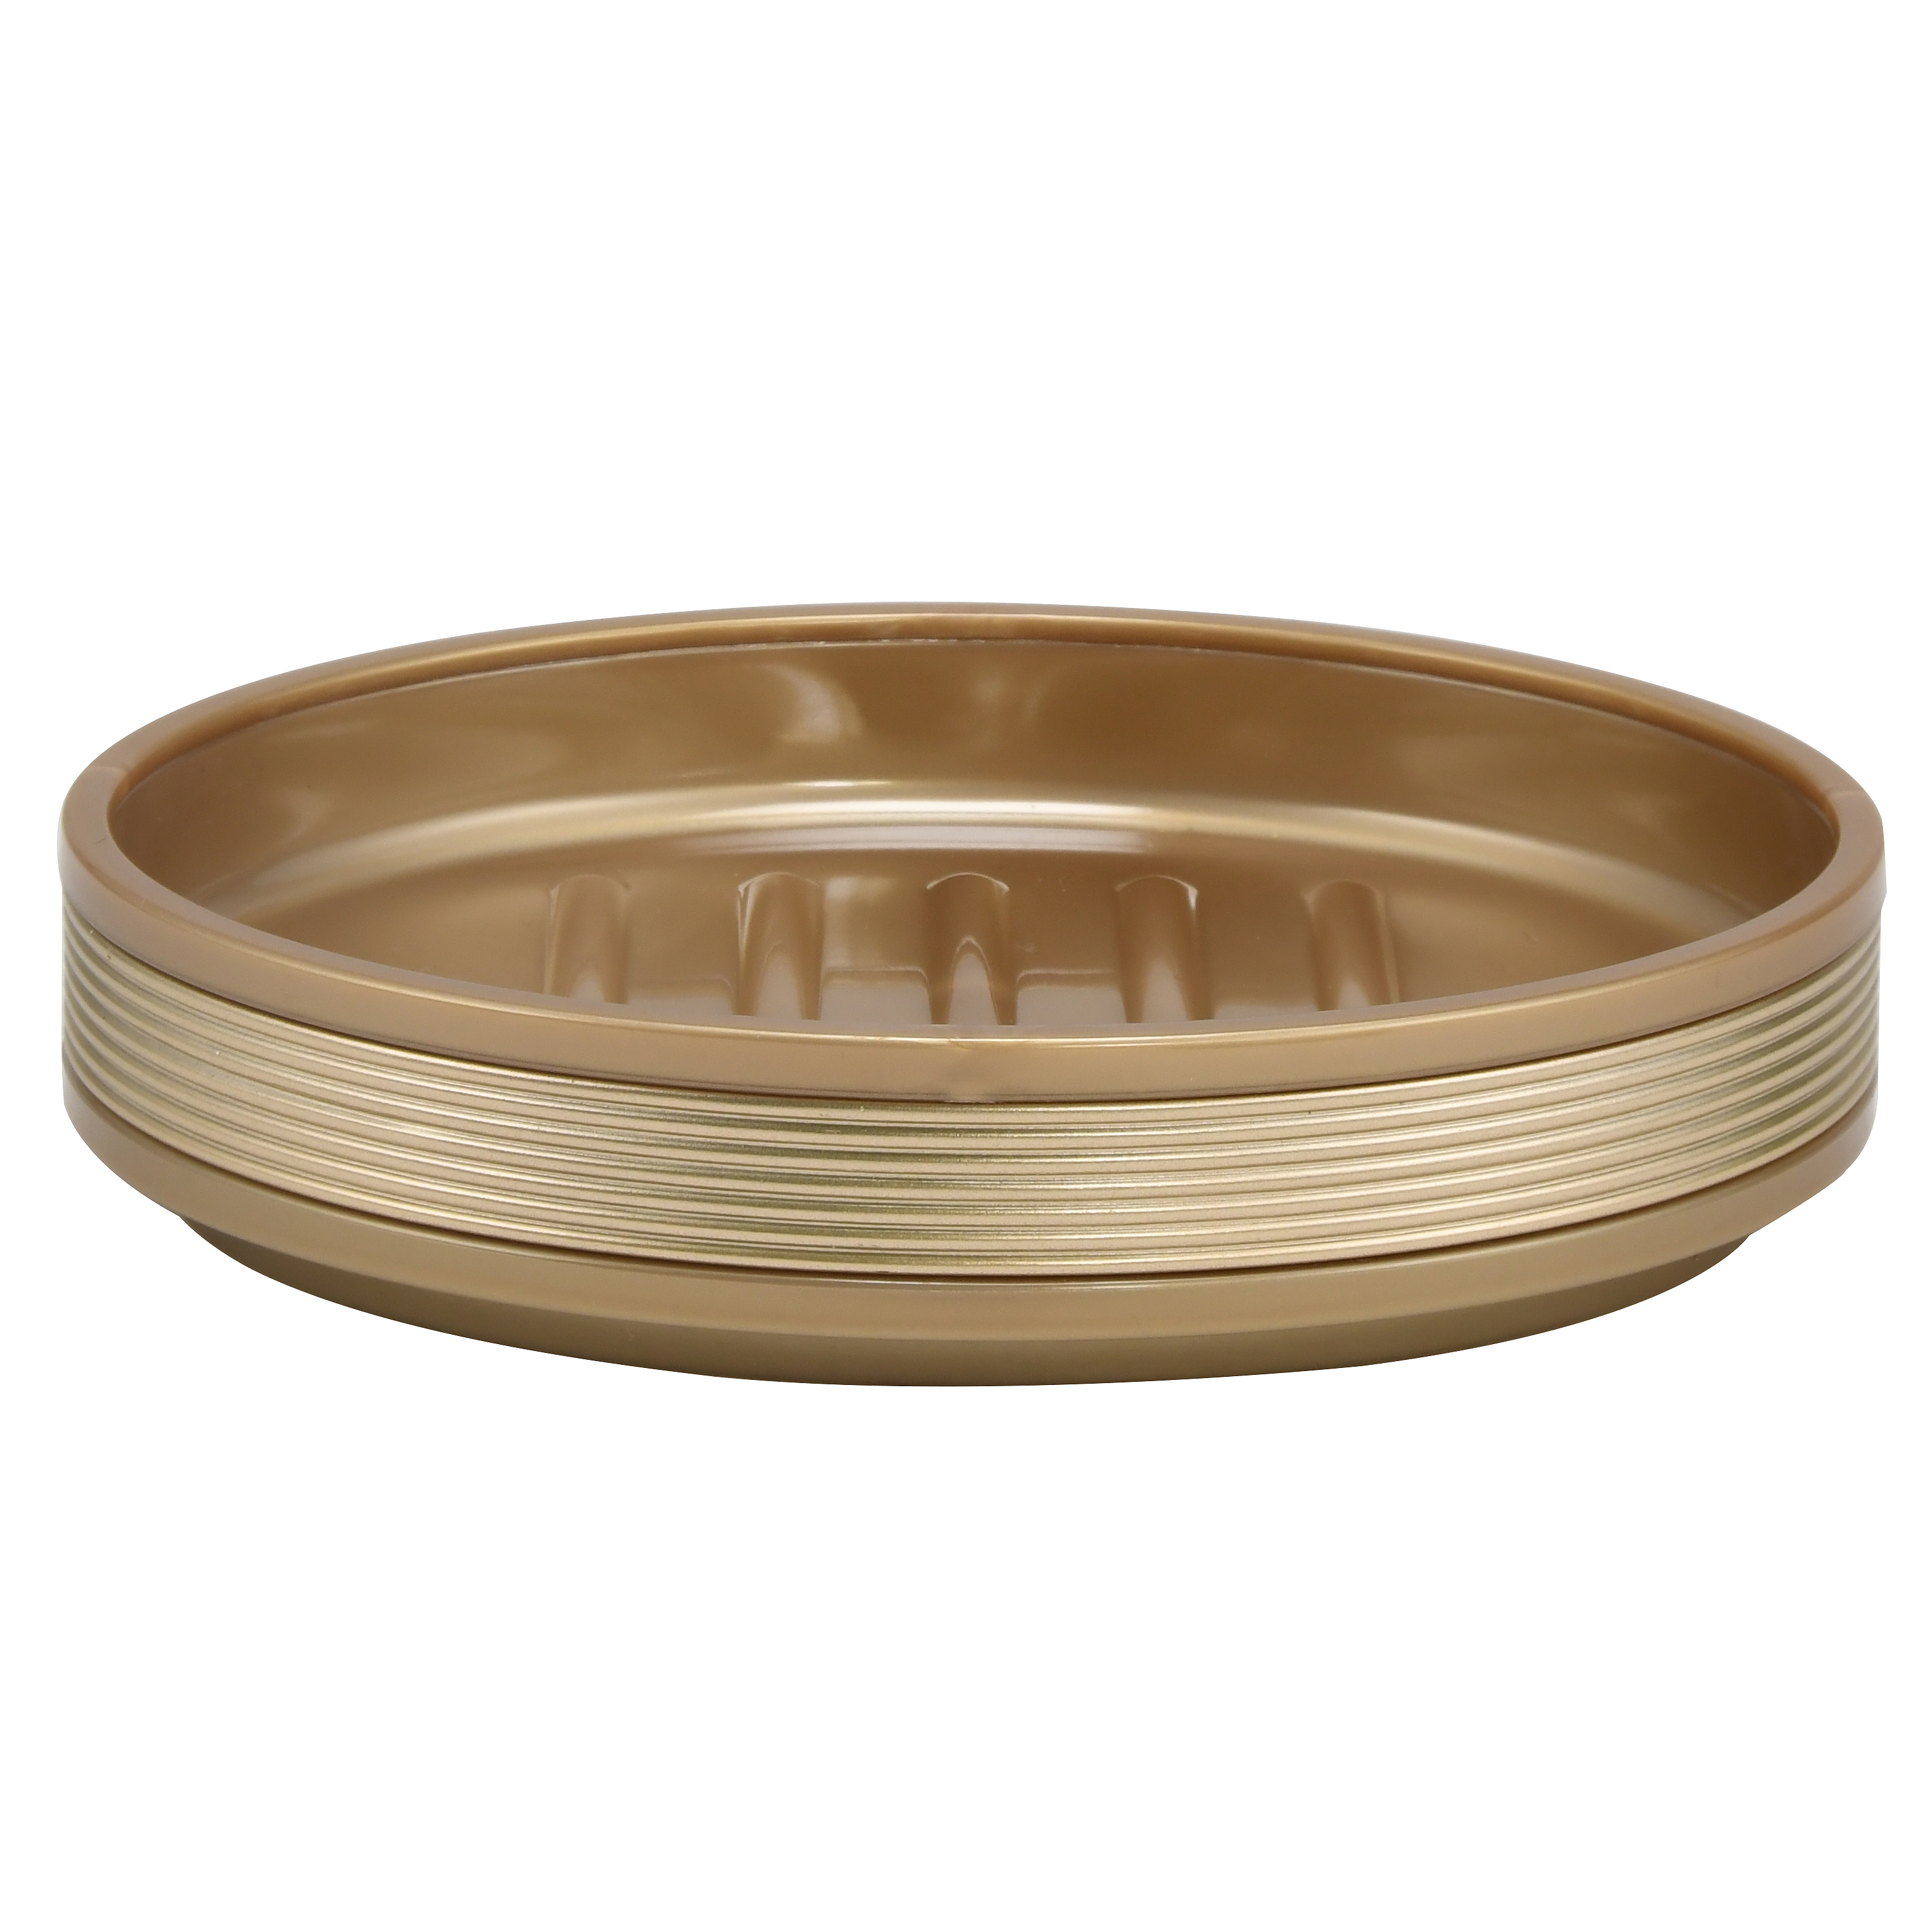 Mainstays Soft Touch Gold Soap Dish, 1 Each